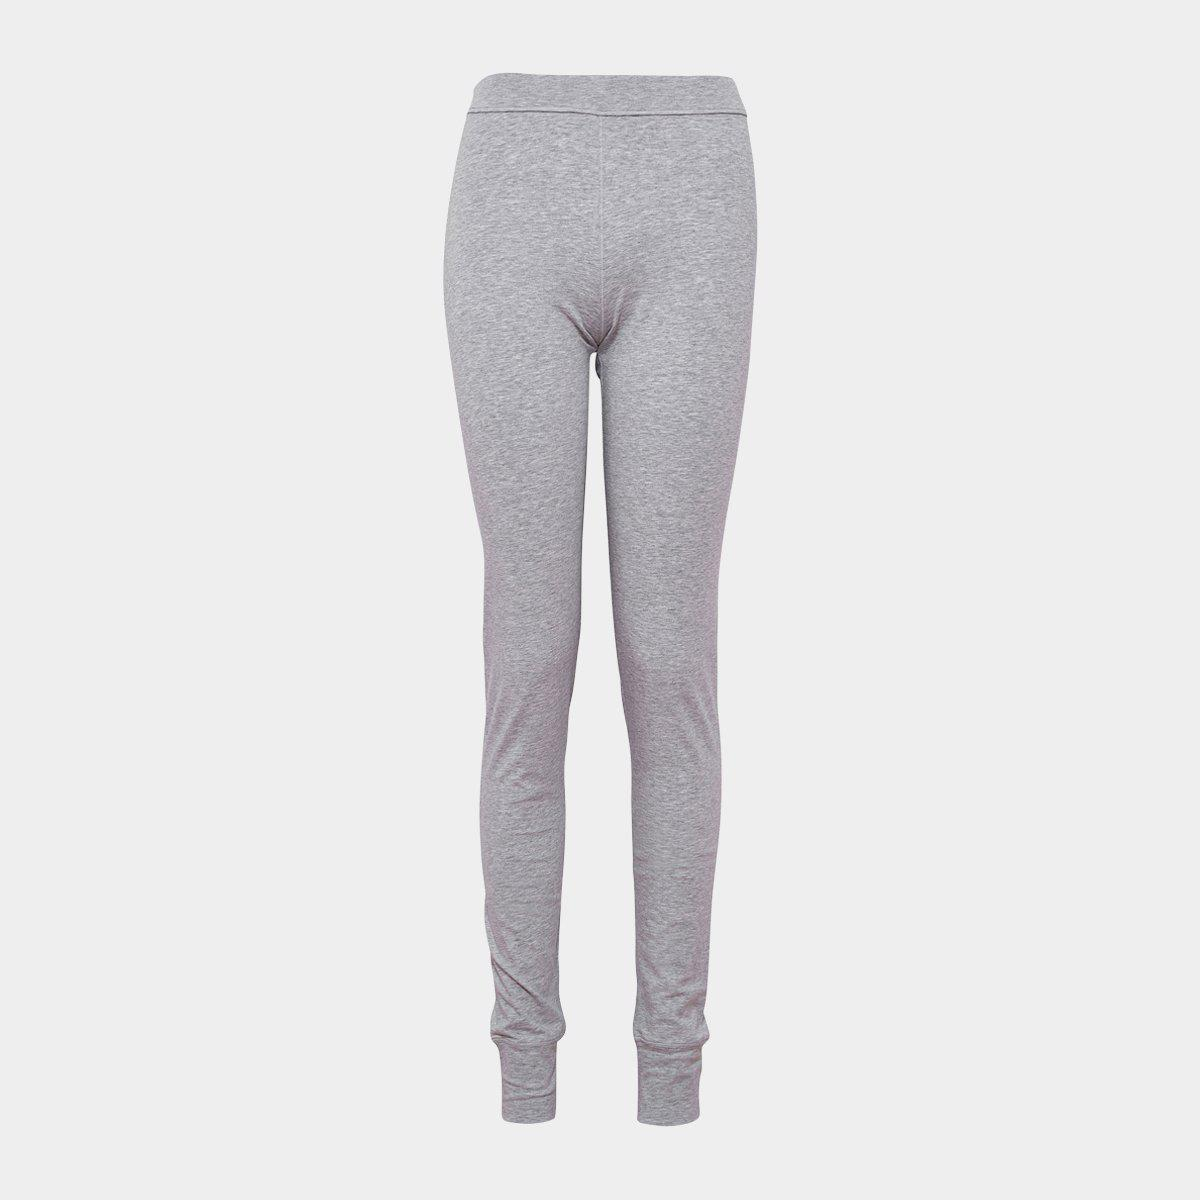 PANTS BAMBOO, GREY-JBS OF DENMARK-minlillebutik